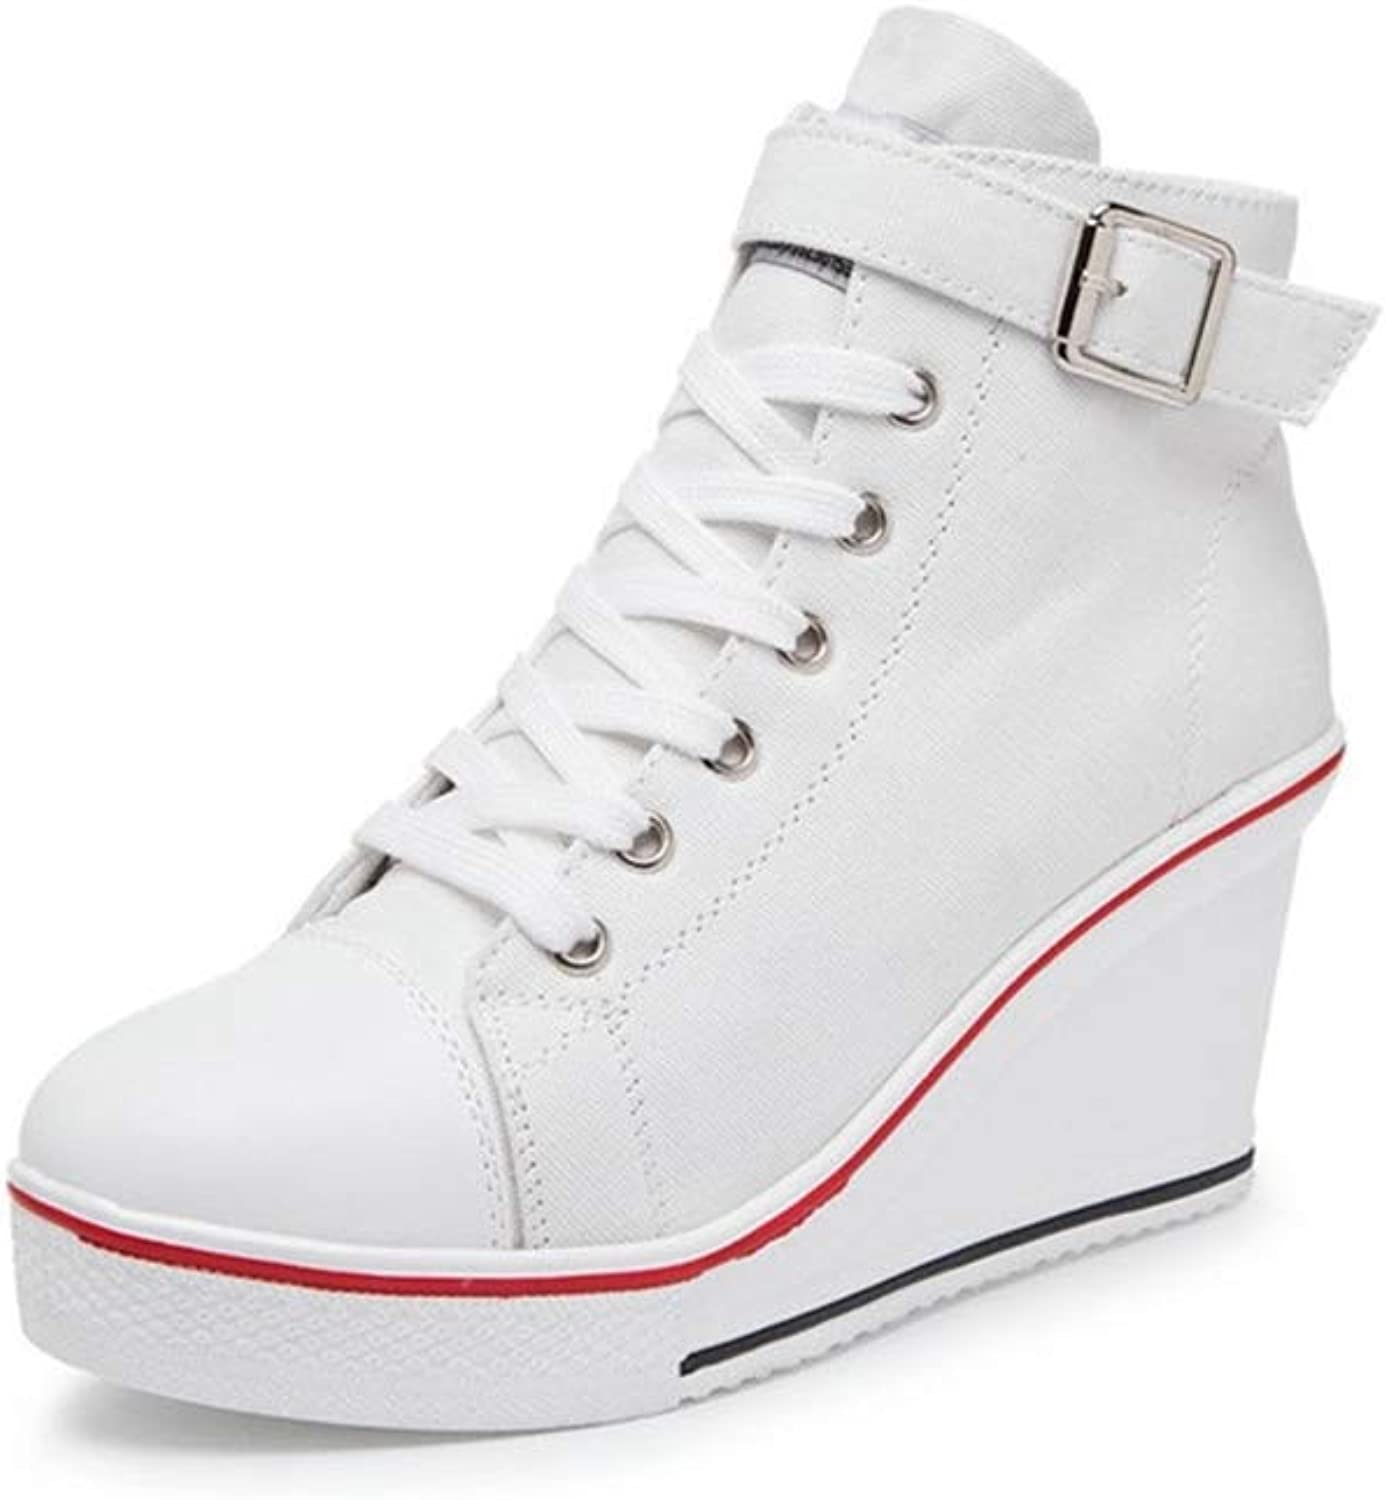 Btrada Women White Canvas Wedges Sneakers High Top Slip-on Height Increase High Heel Platform shoes